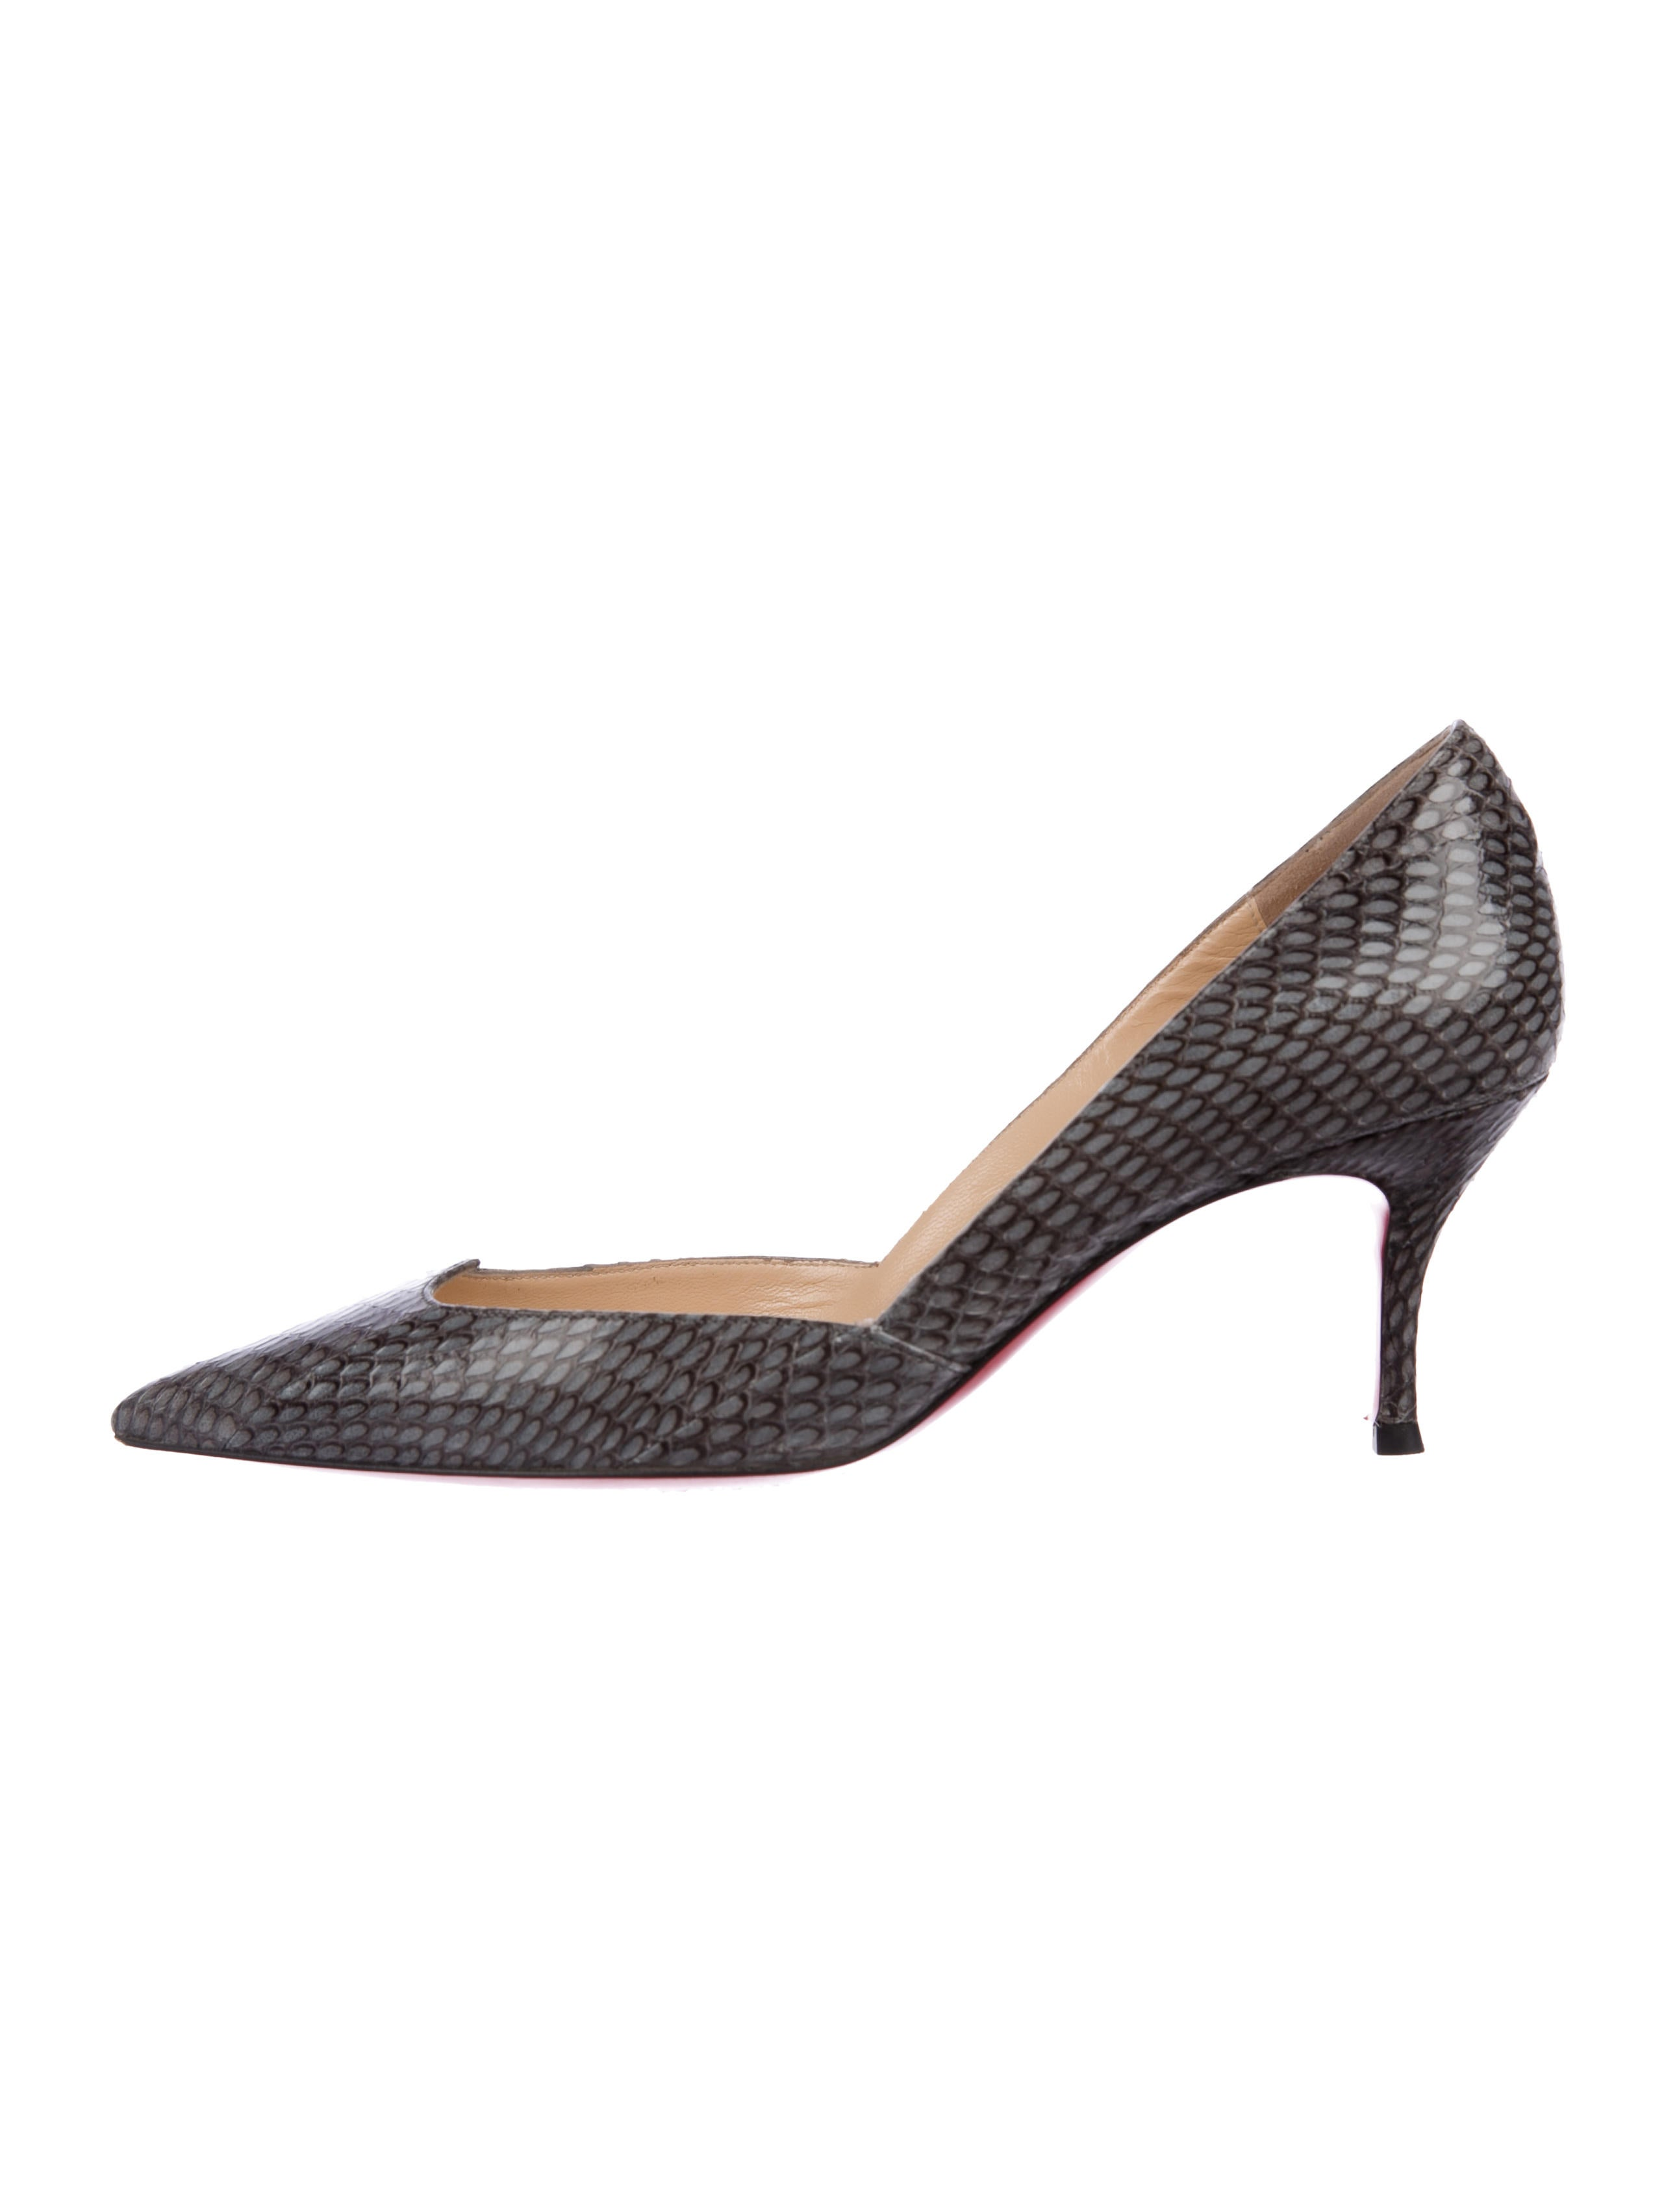 Christian Louboutin Malachic 70 Snakeskin Pumps cheap sale pay with paypal cheap sale prices DV1x552jH